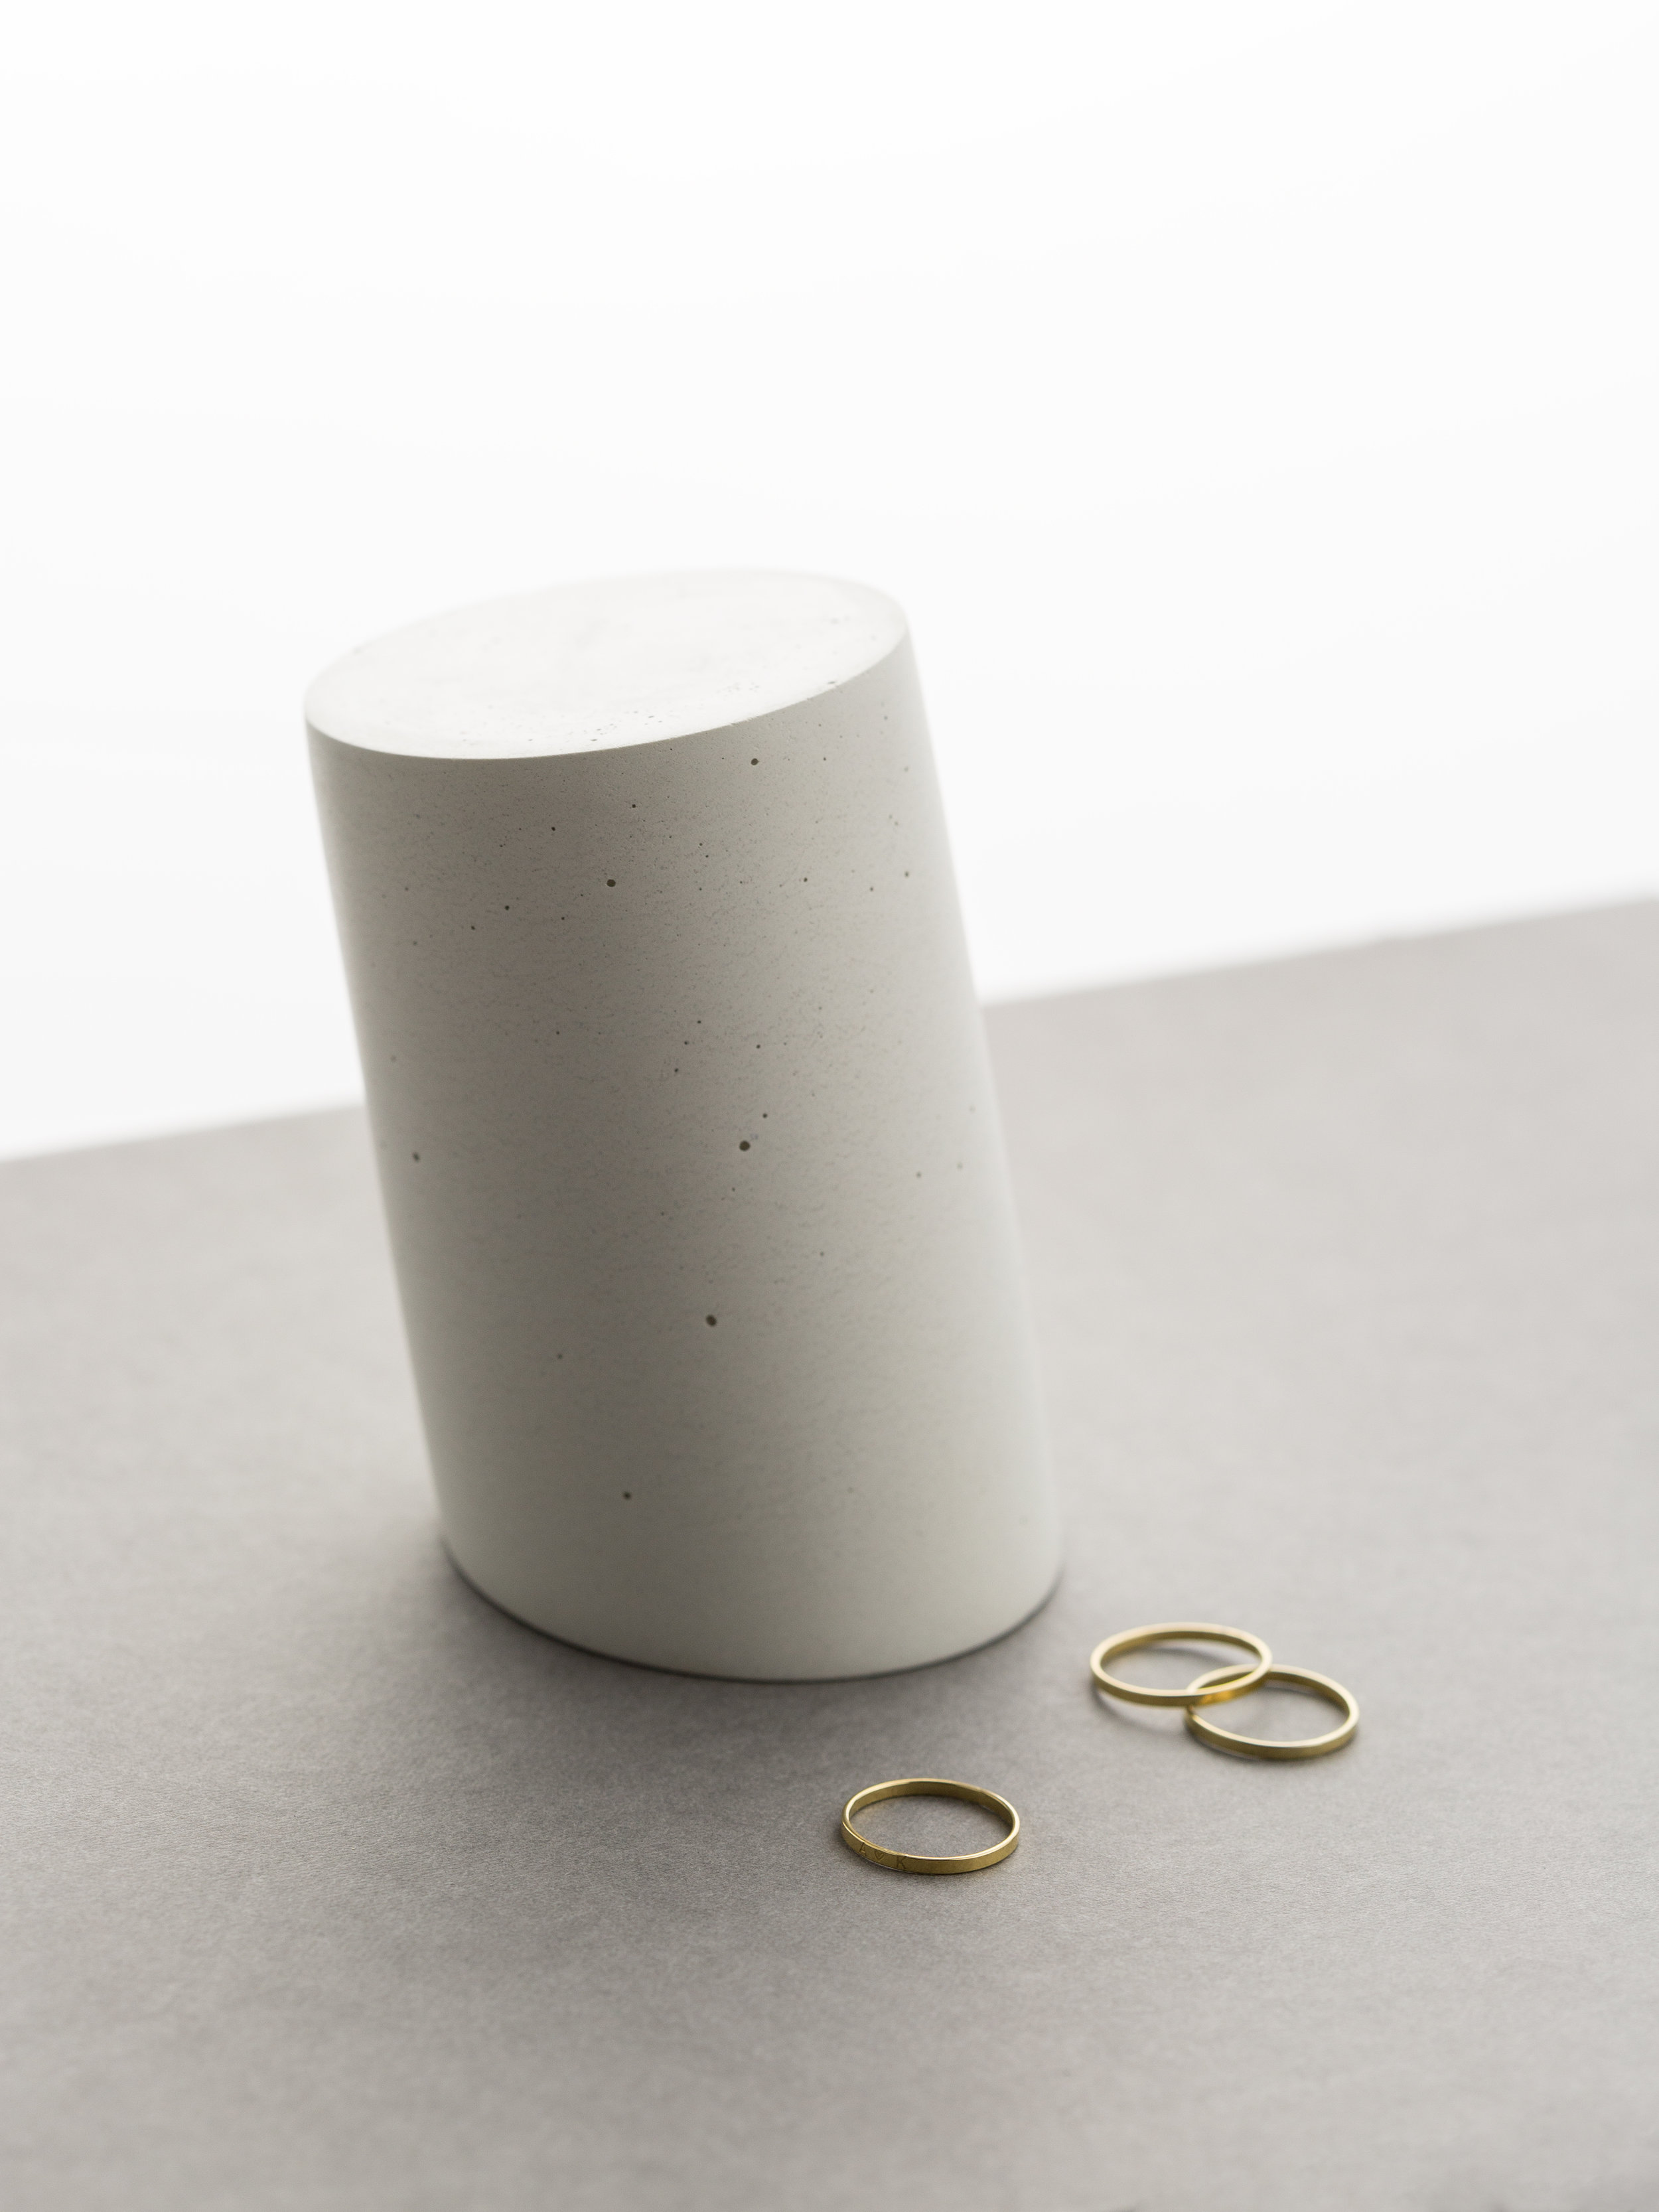 Concrete Vessel:  IN.SEK , Rings:  RHONE BAND  by GLDN